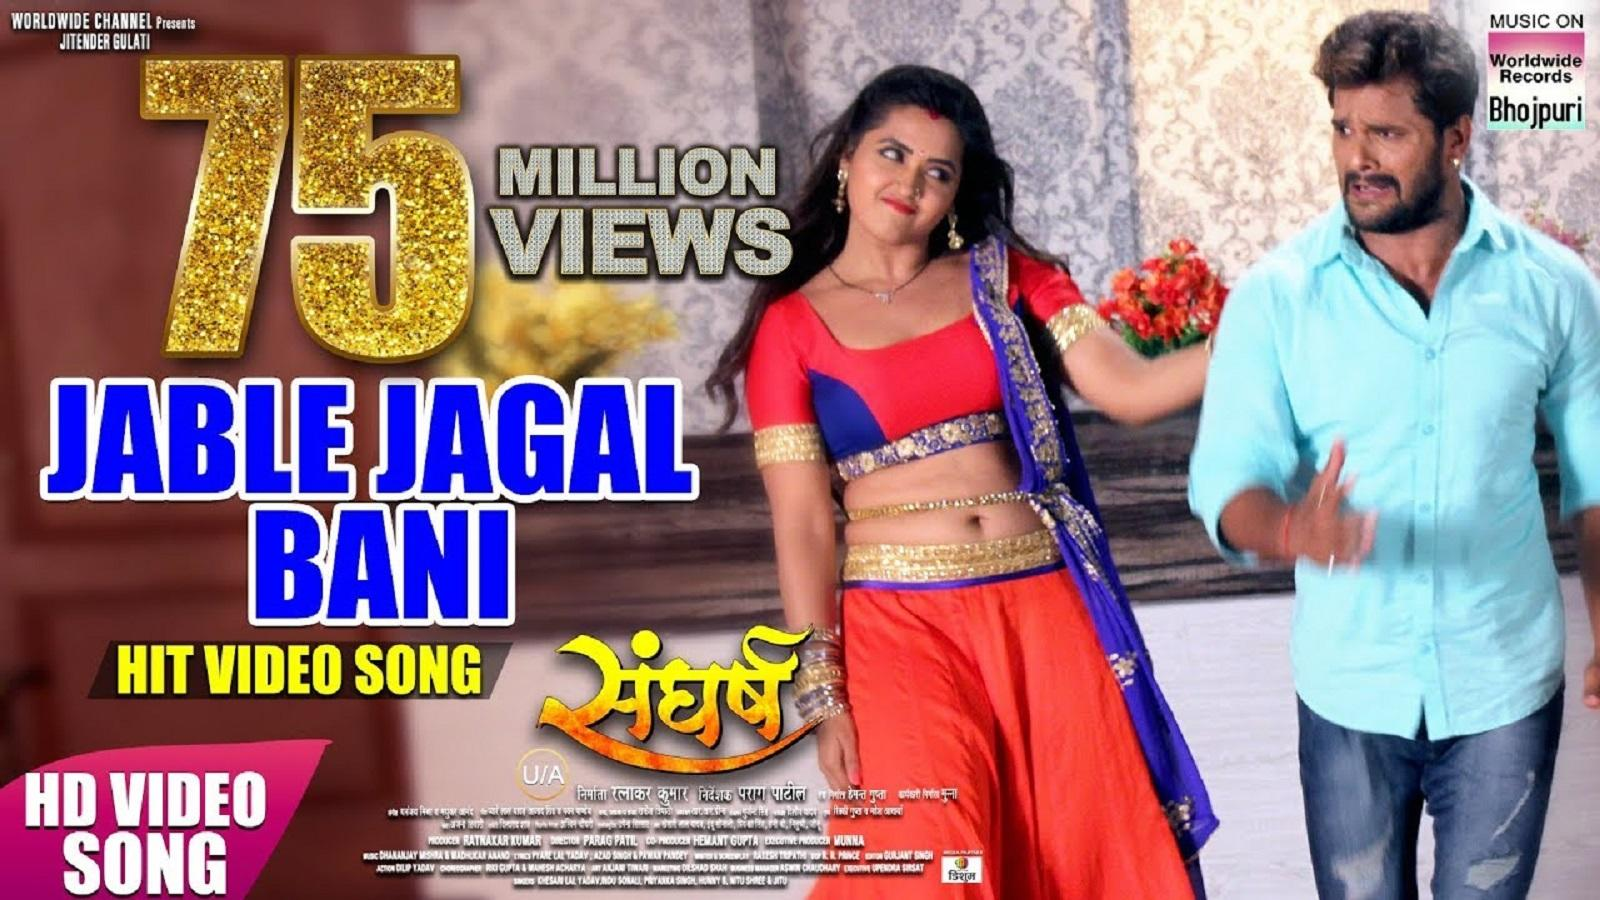 Bhojpuri Song 'Jable Jagal Bani' Ft  Khesari Lal Yadav and Kajal Raghwani